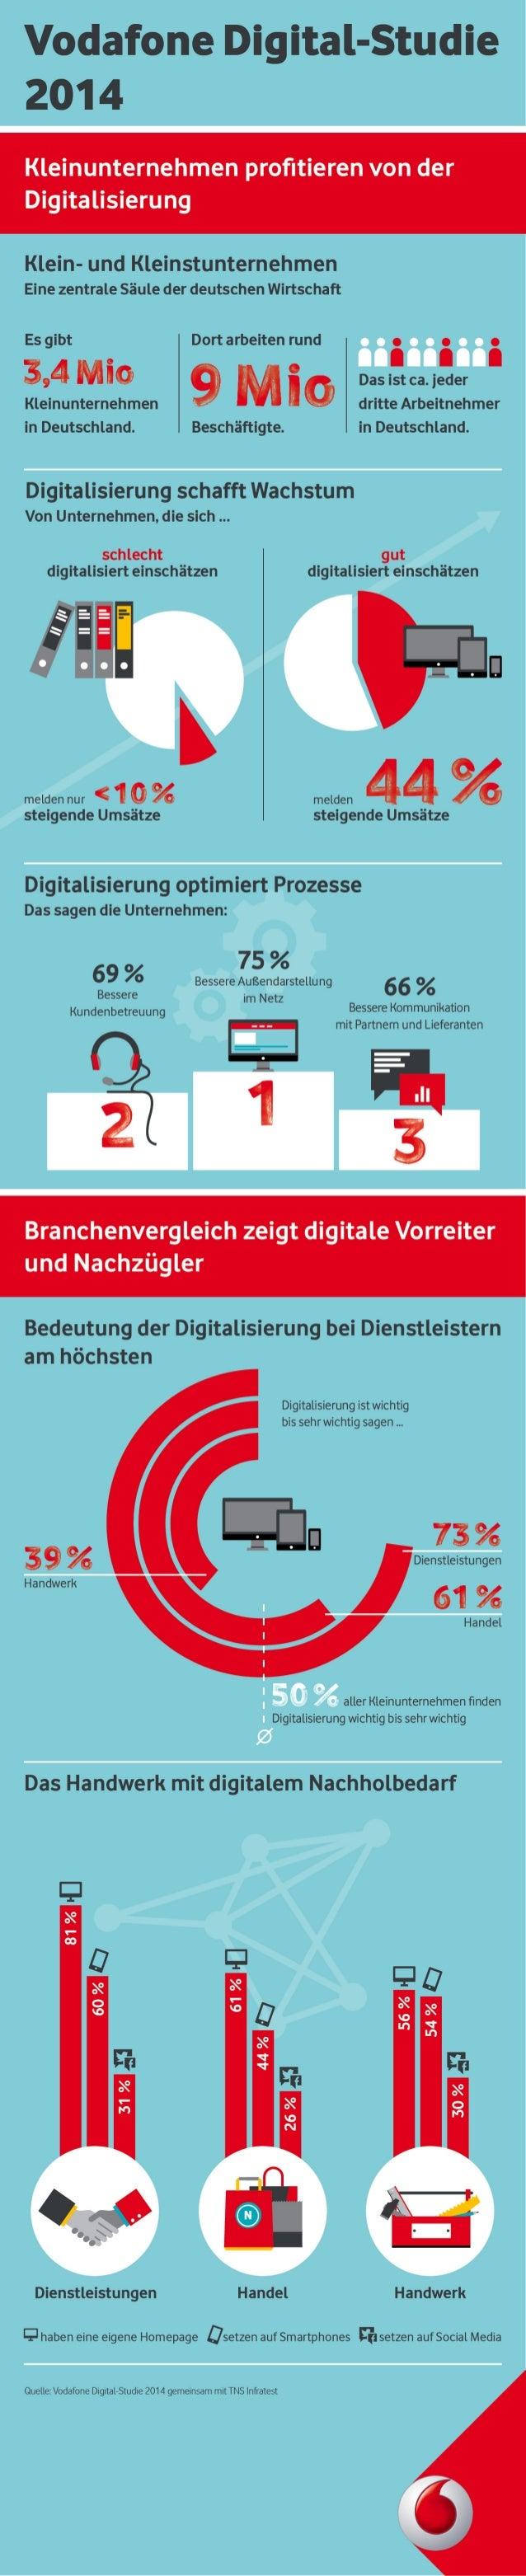 Vodafone Digital-Studie 2014